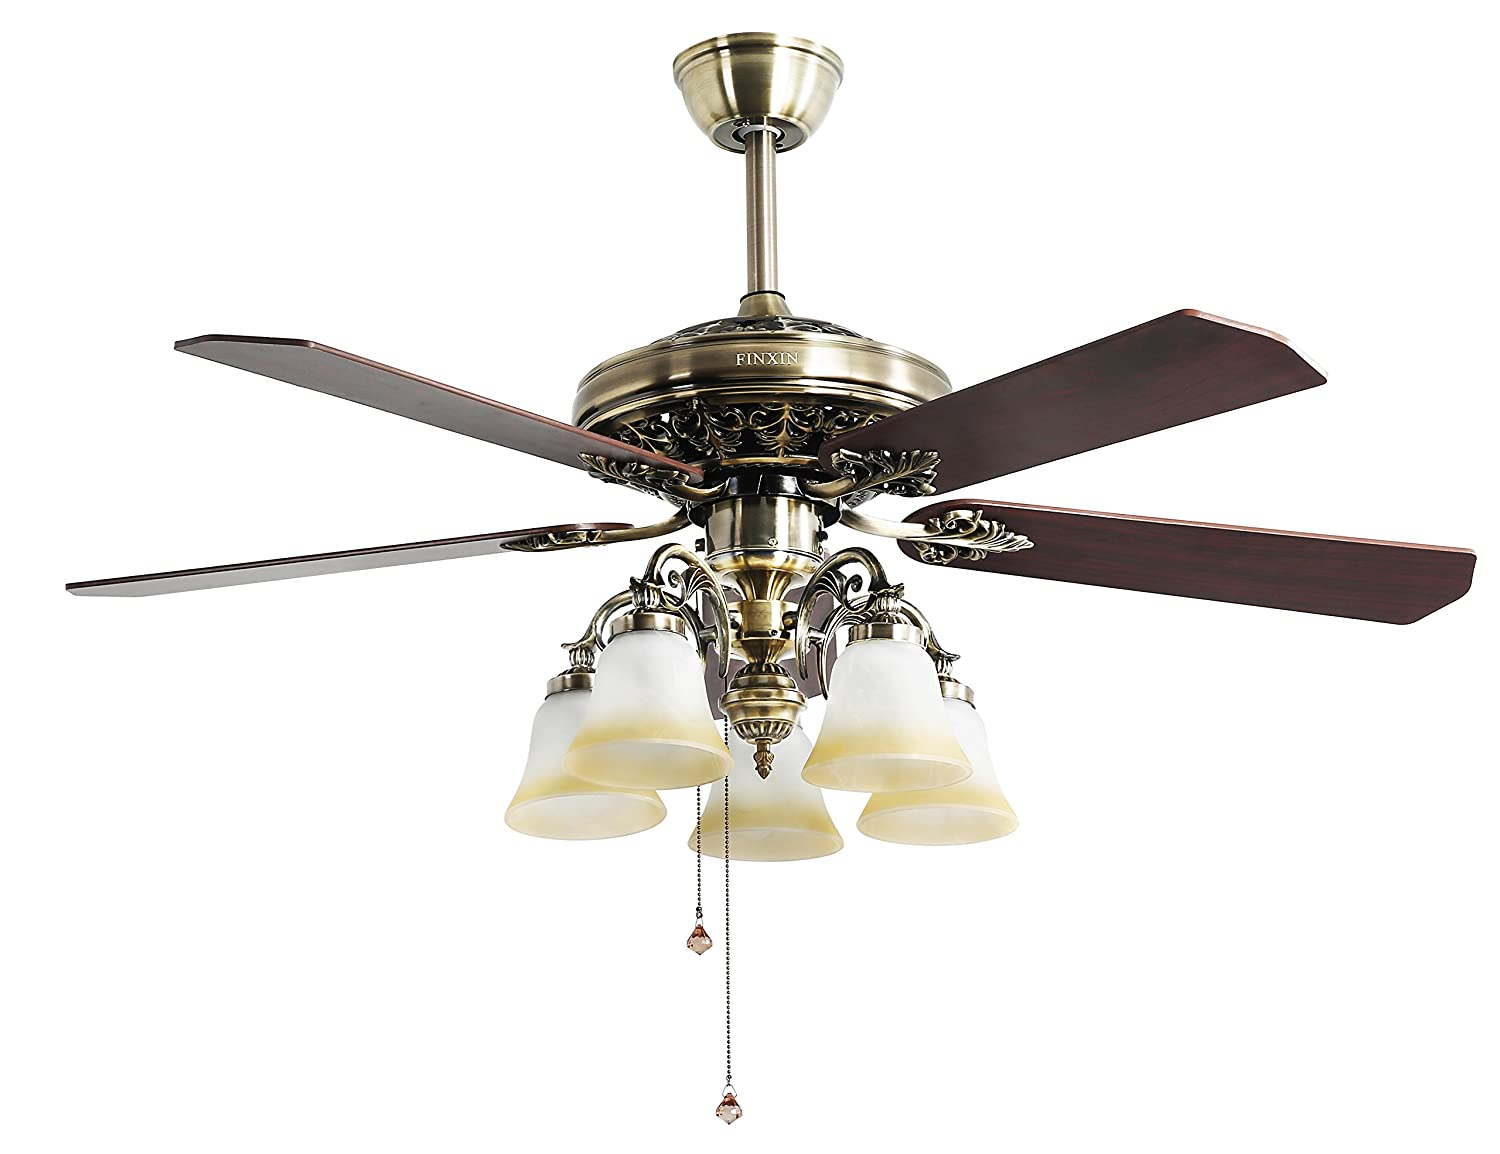 Great Indoor Ceiling Fan Light Fixtures   FINXIN FXCF03 (New Style) New Bronze  Remote LED 52 Ceiling Fans For Bedroom,Living Room,Dining Room Including  Motor ...